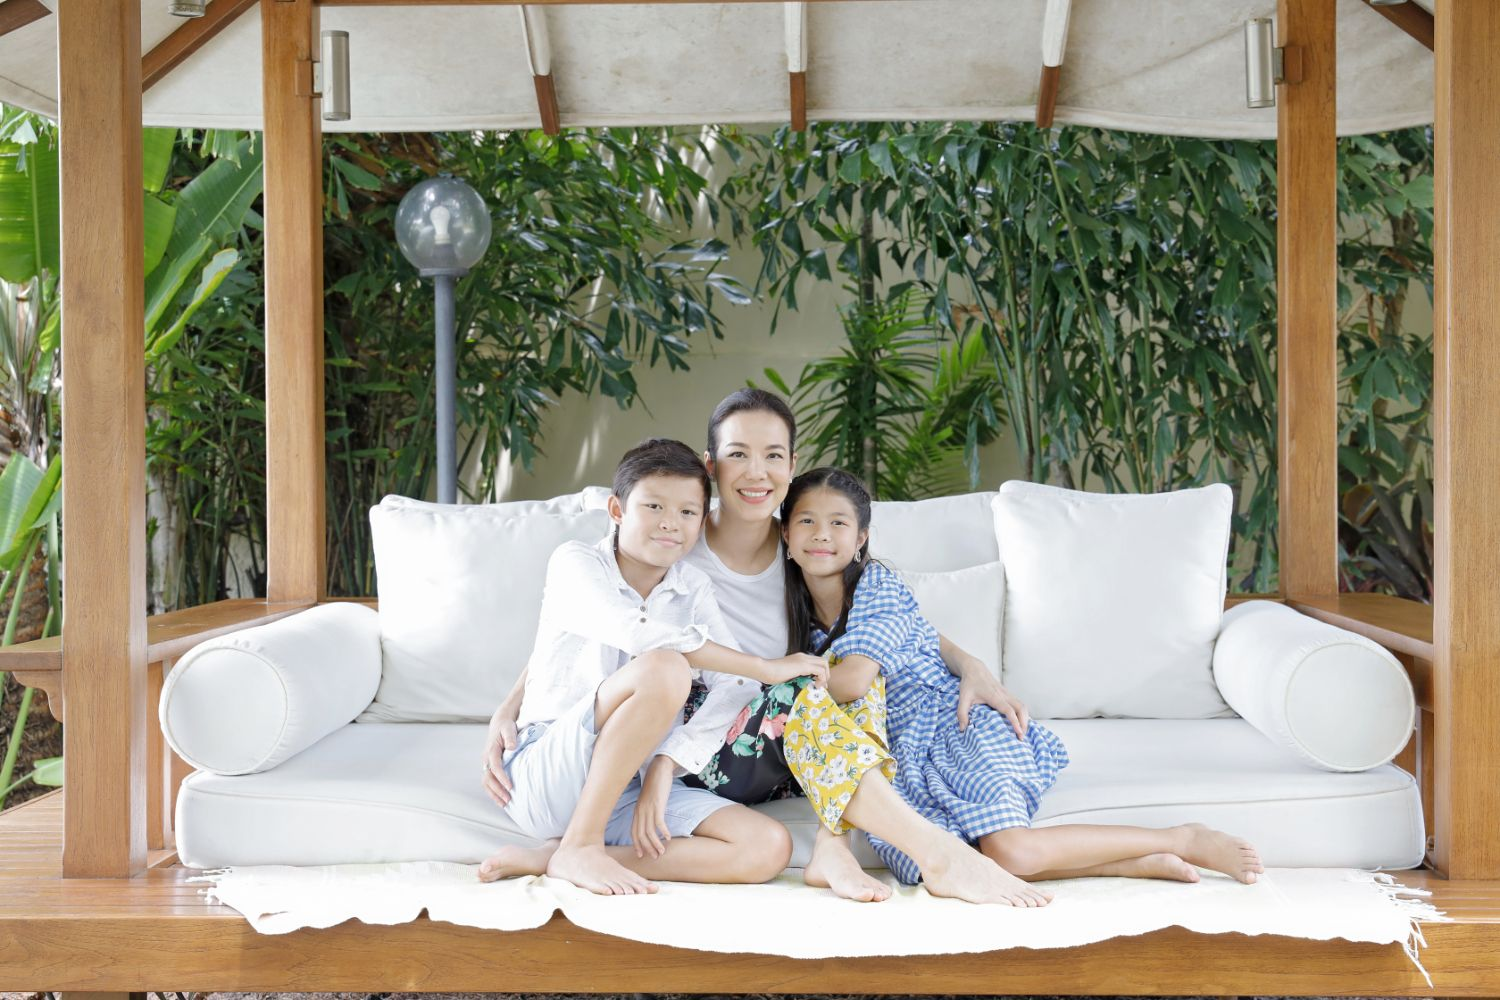 Home Tour: Inside Prae Sirisant's Plush Residential Villa